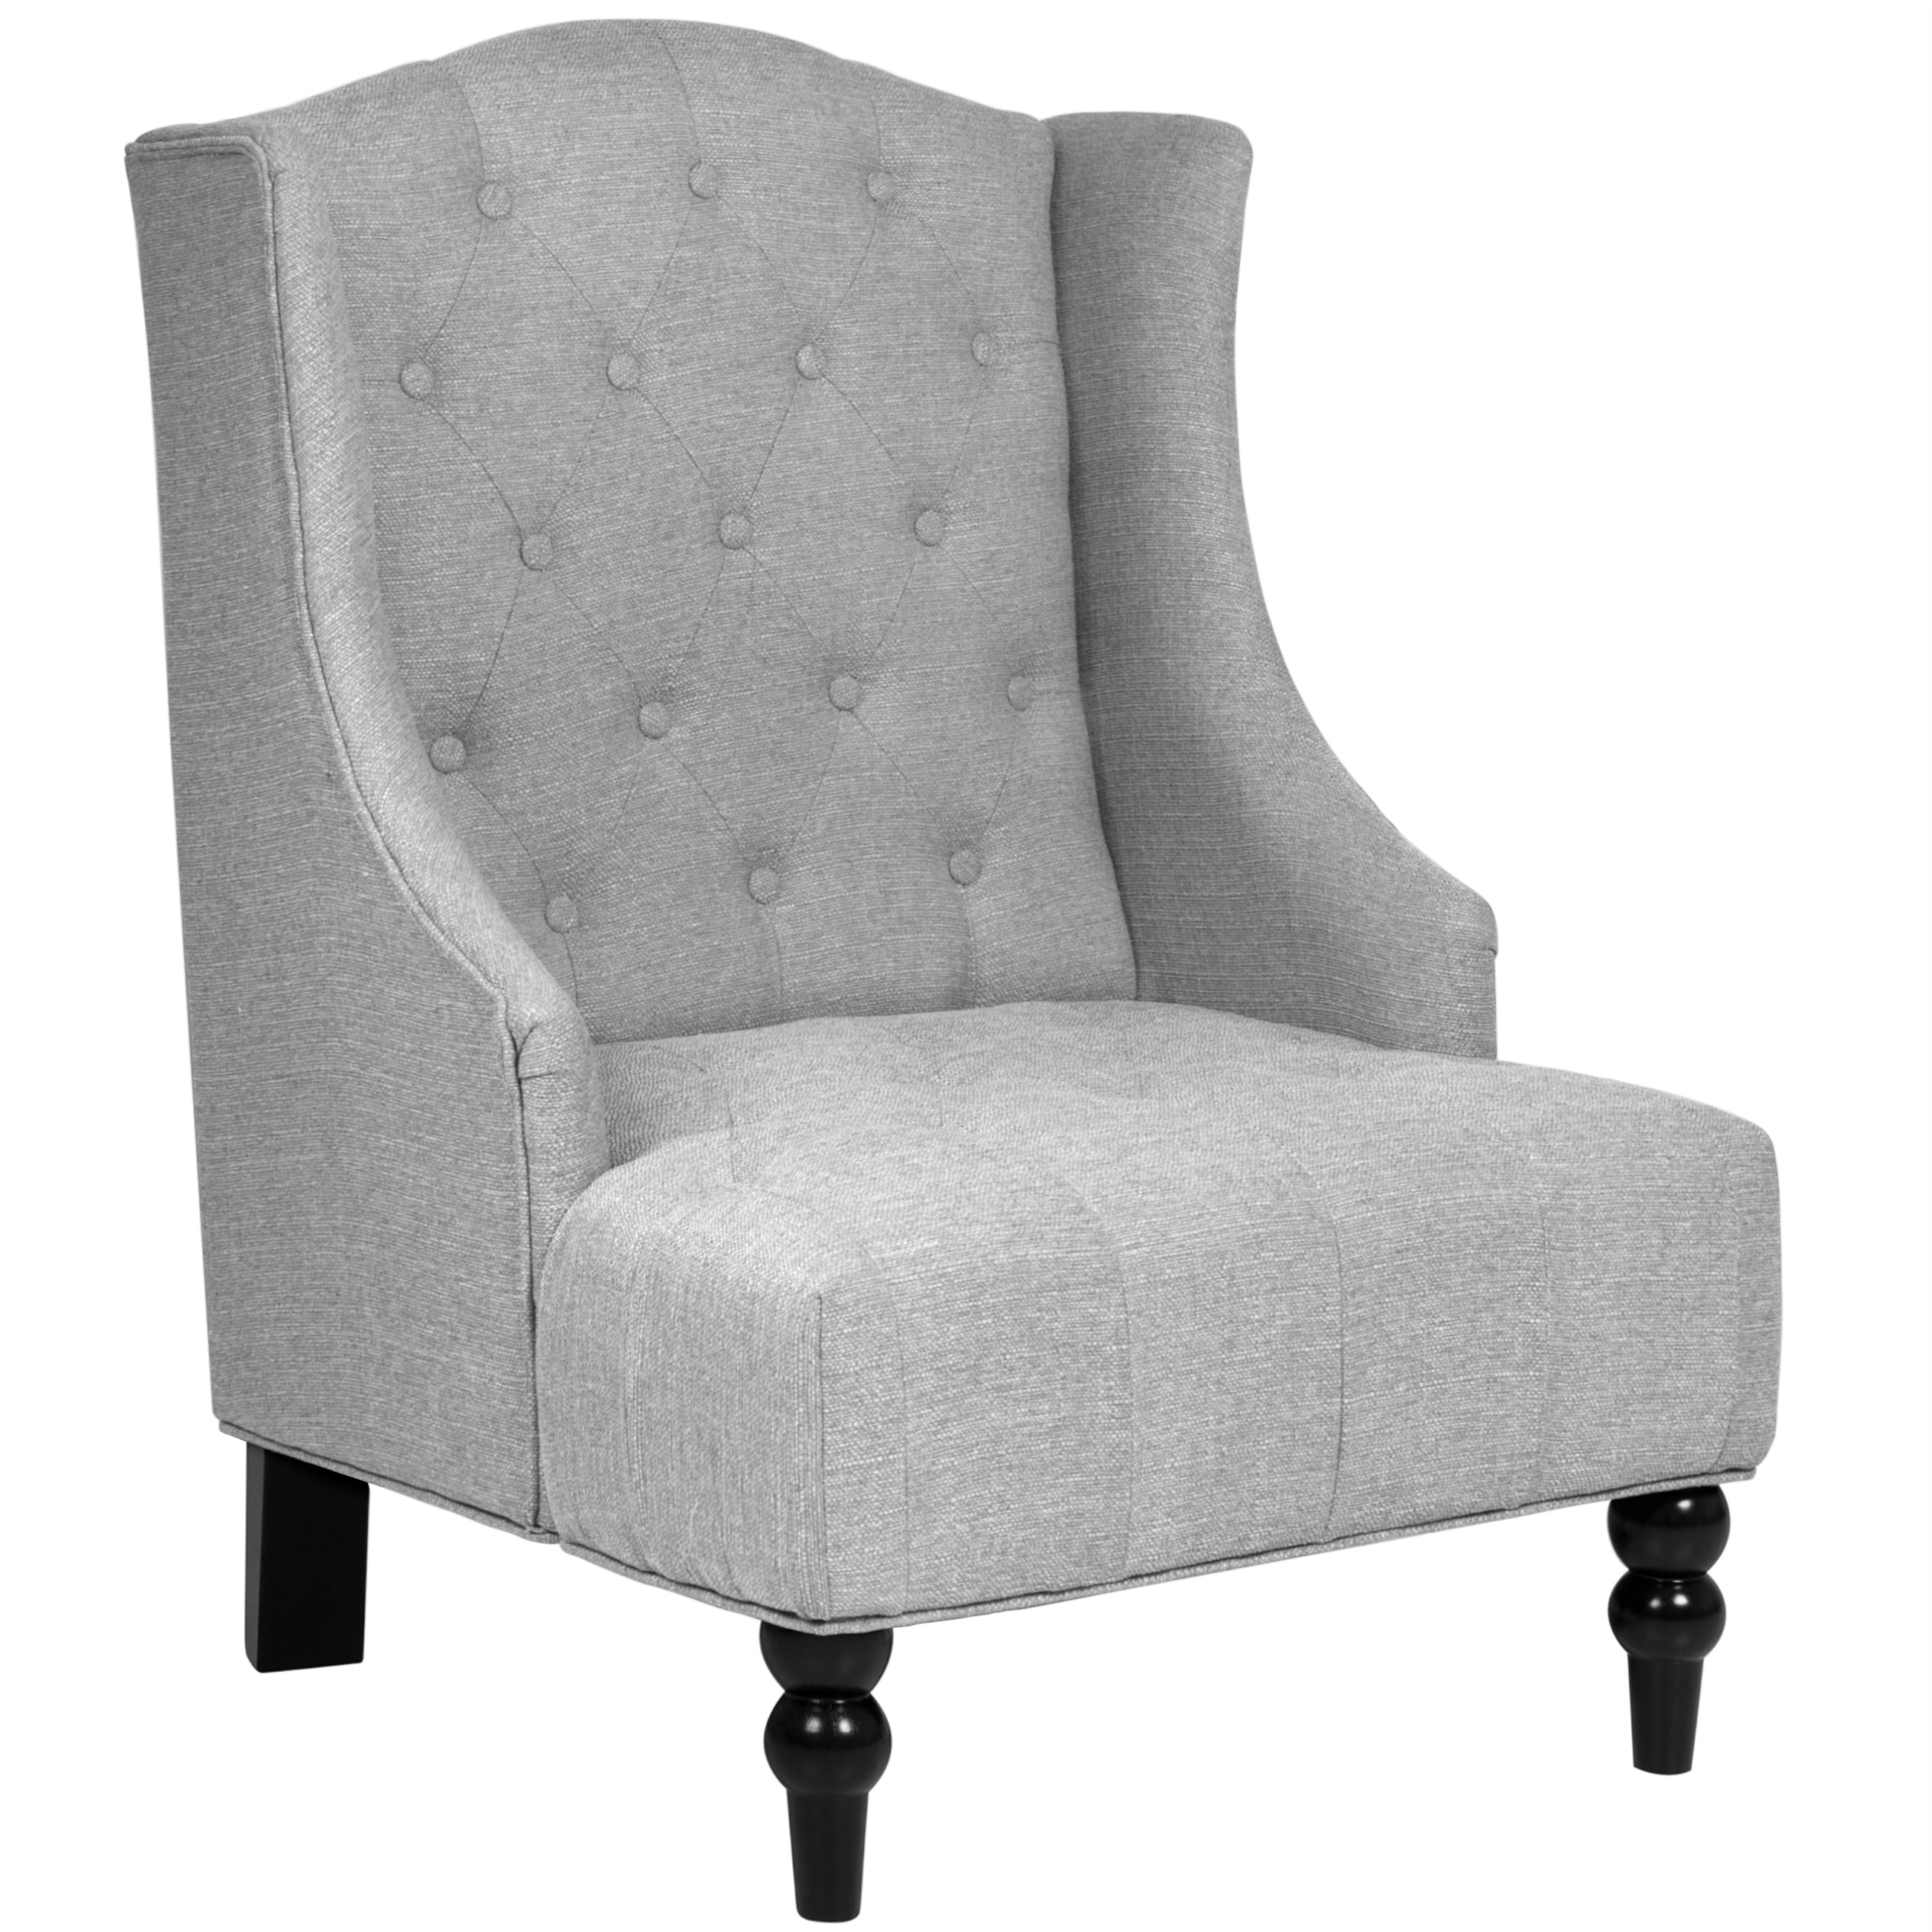 Best Choice Products Tall Wingback Tufted Fabric Accent Chair - Gray